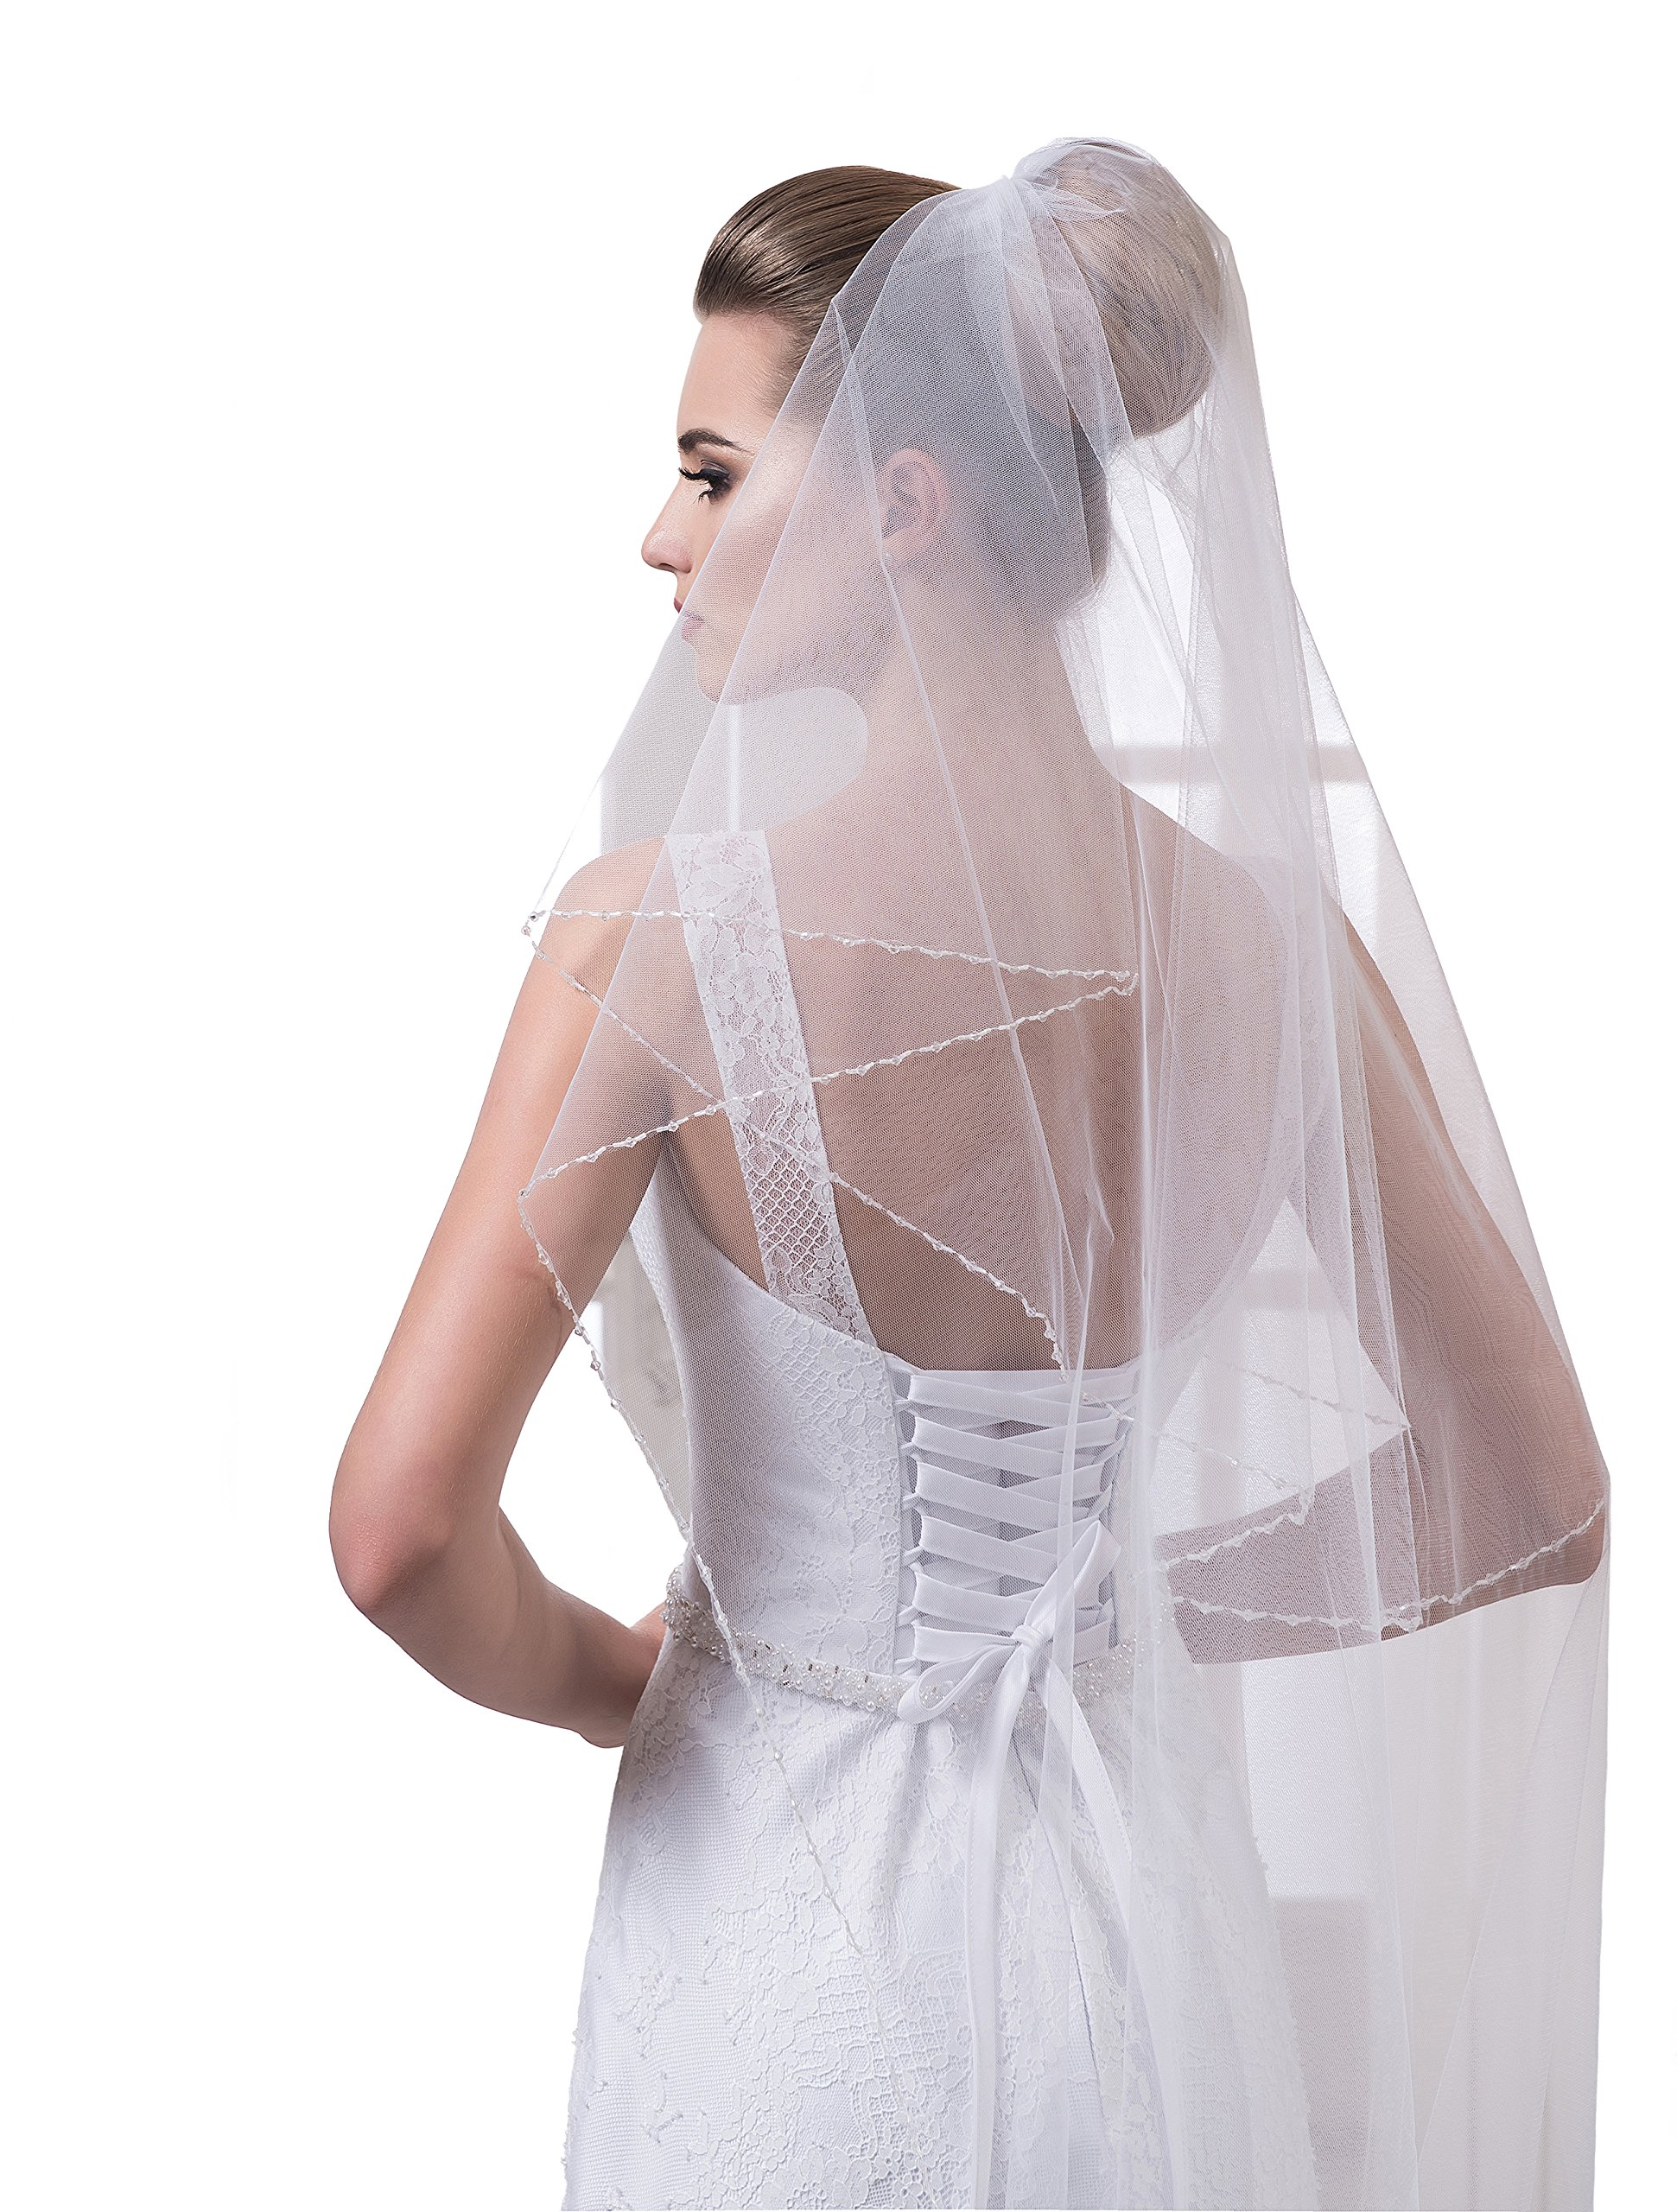 Bridal Veil Piper from NYC Bride collection (mid-length 45'', white) by NYC Bride